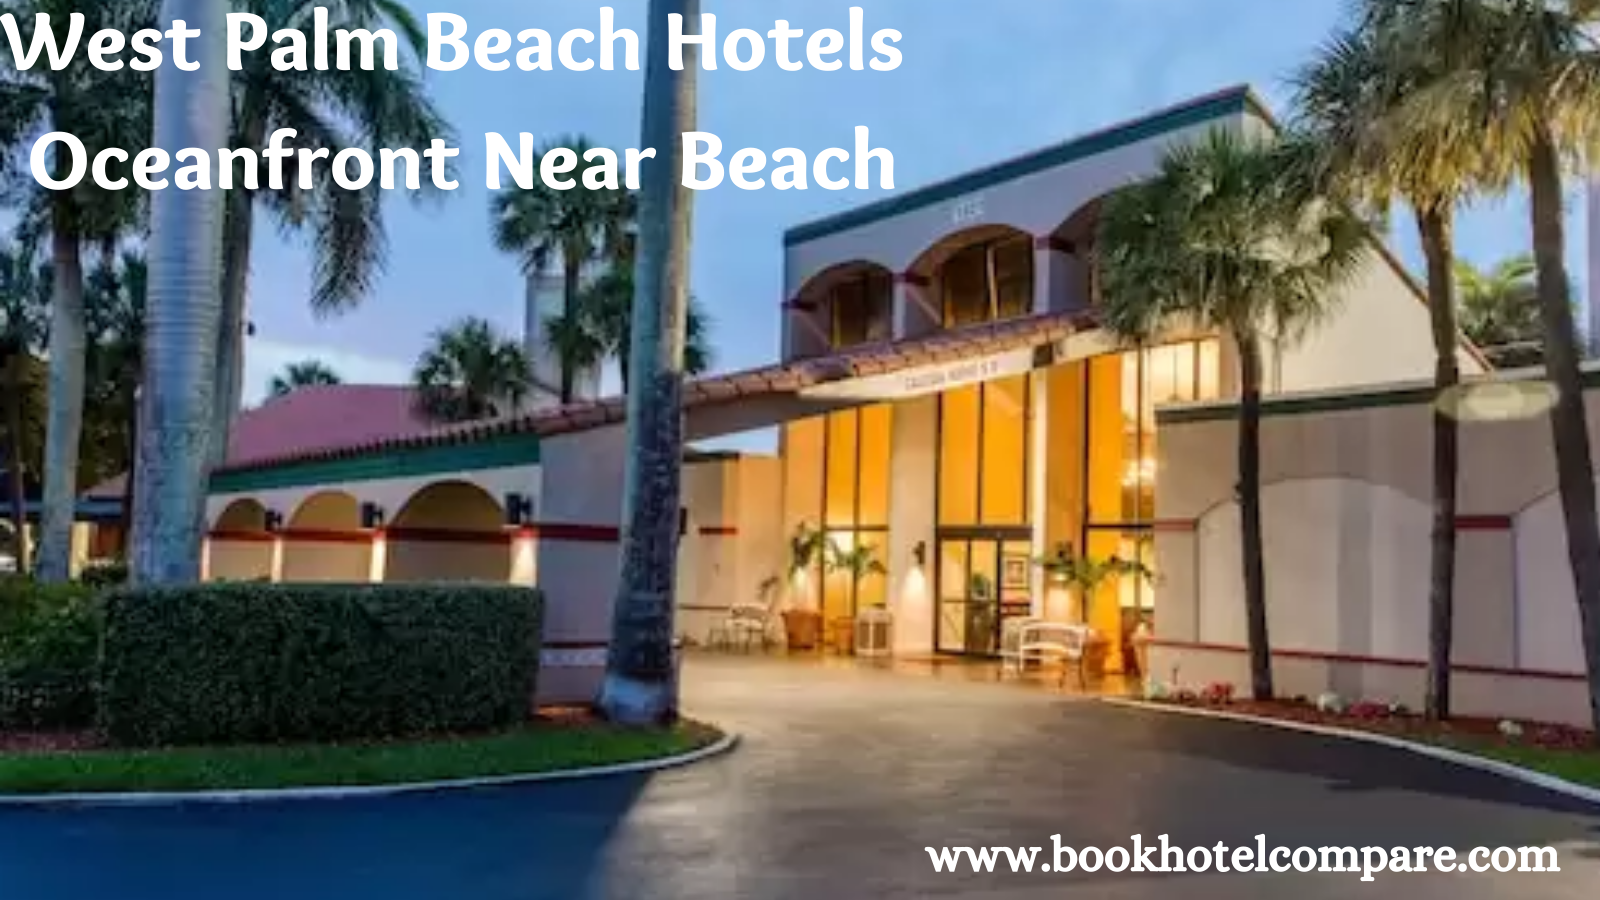 West Palm Beach Hotels Oceanfront Near Beach West Palm is home to some of the best beaches travelers can explore with low cost hotel rooms. #westpalmbeach #beachhotels #beachresort #oceanfronthotels #onlinehotels #hoteldeals #cheaphotels